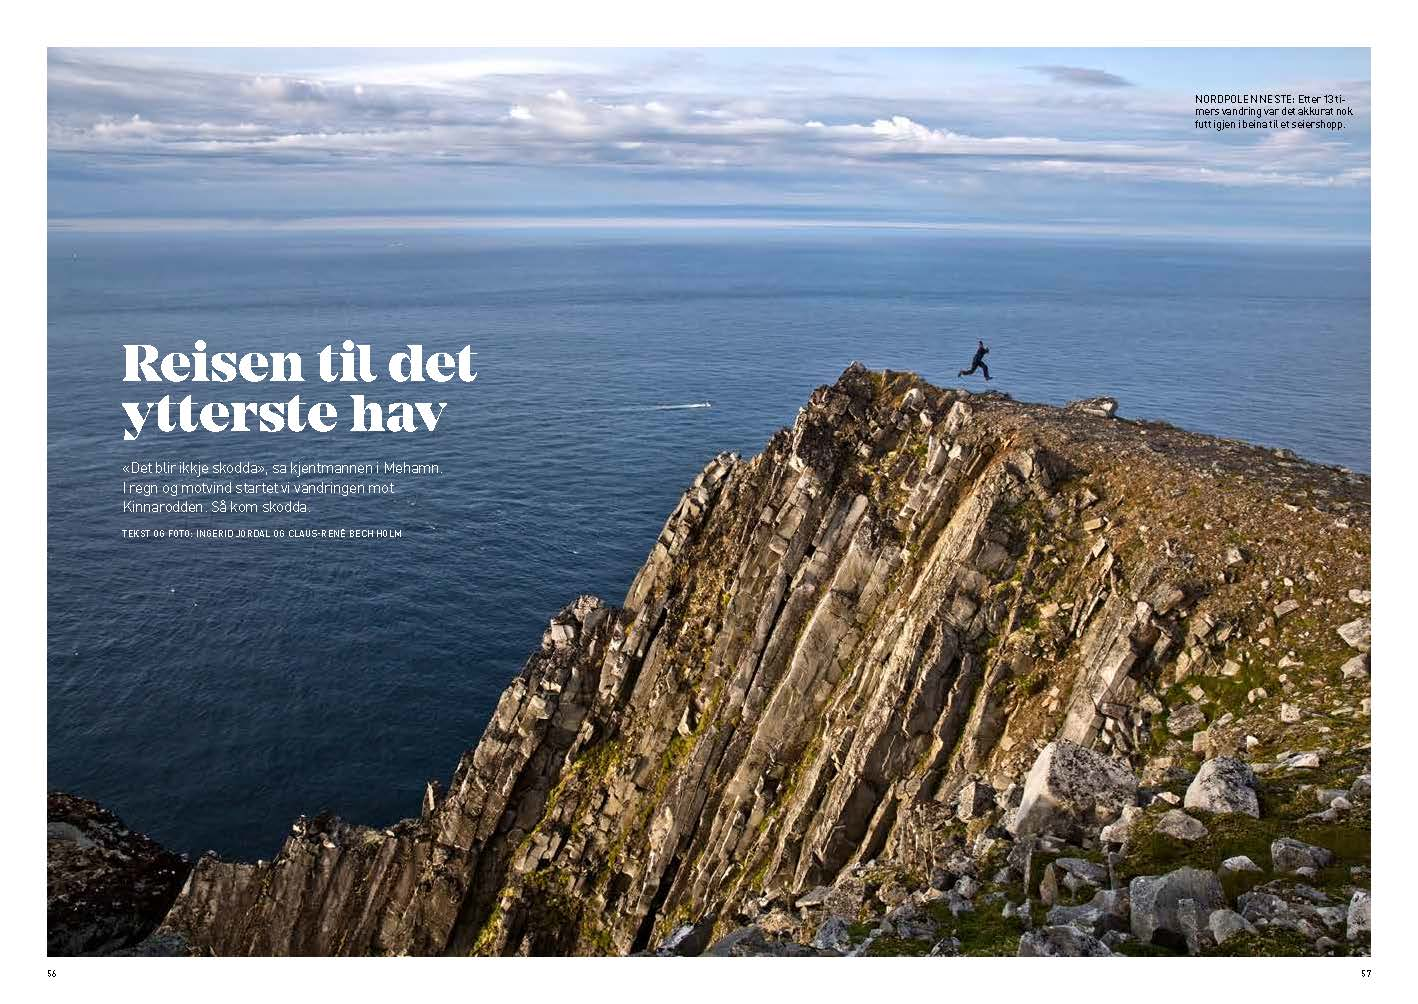 5 pages about a hike to the northernmost part of mainland Europe, Kinnarodden in Norway.